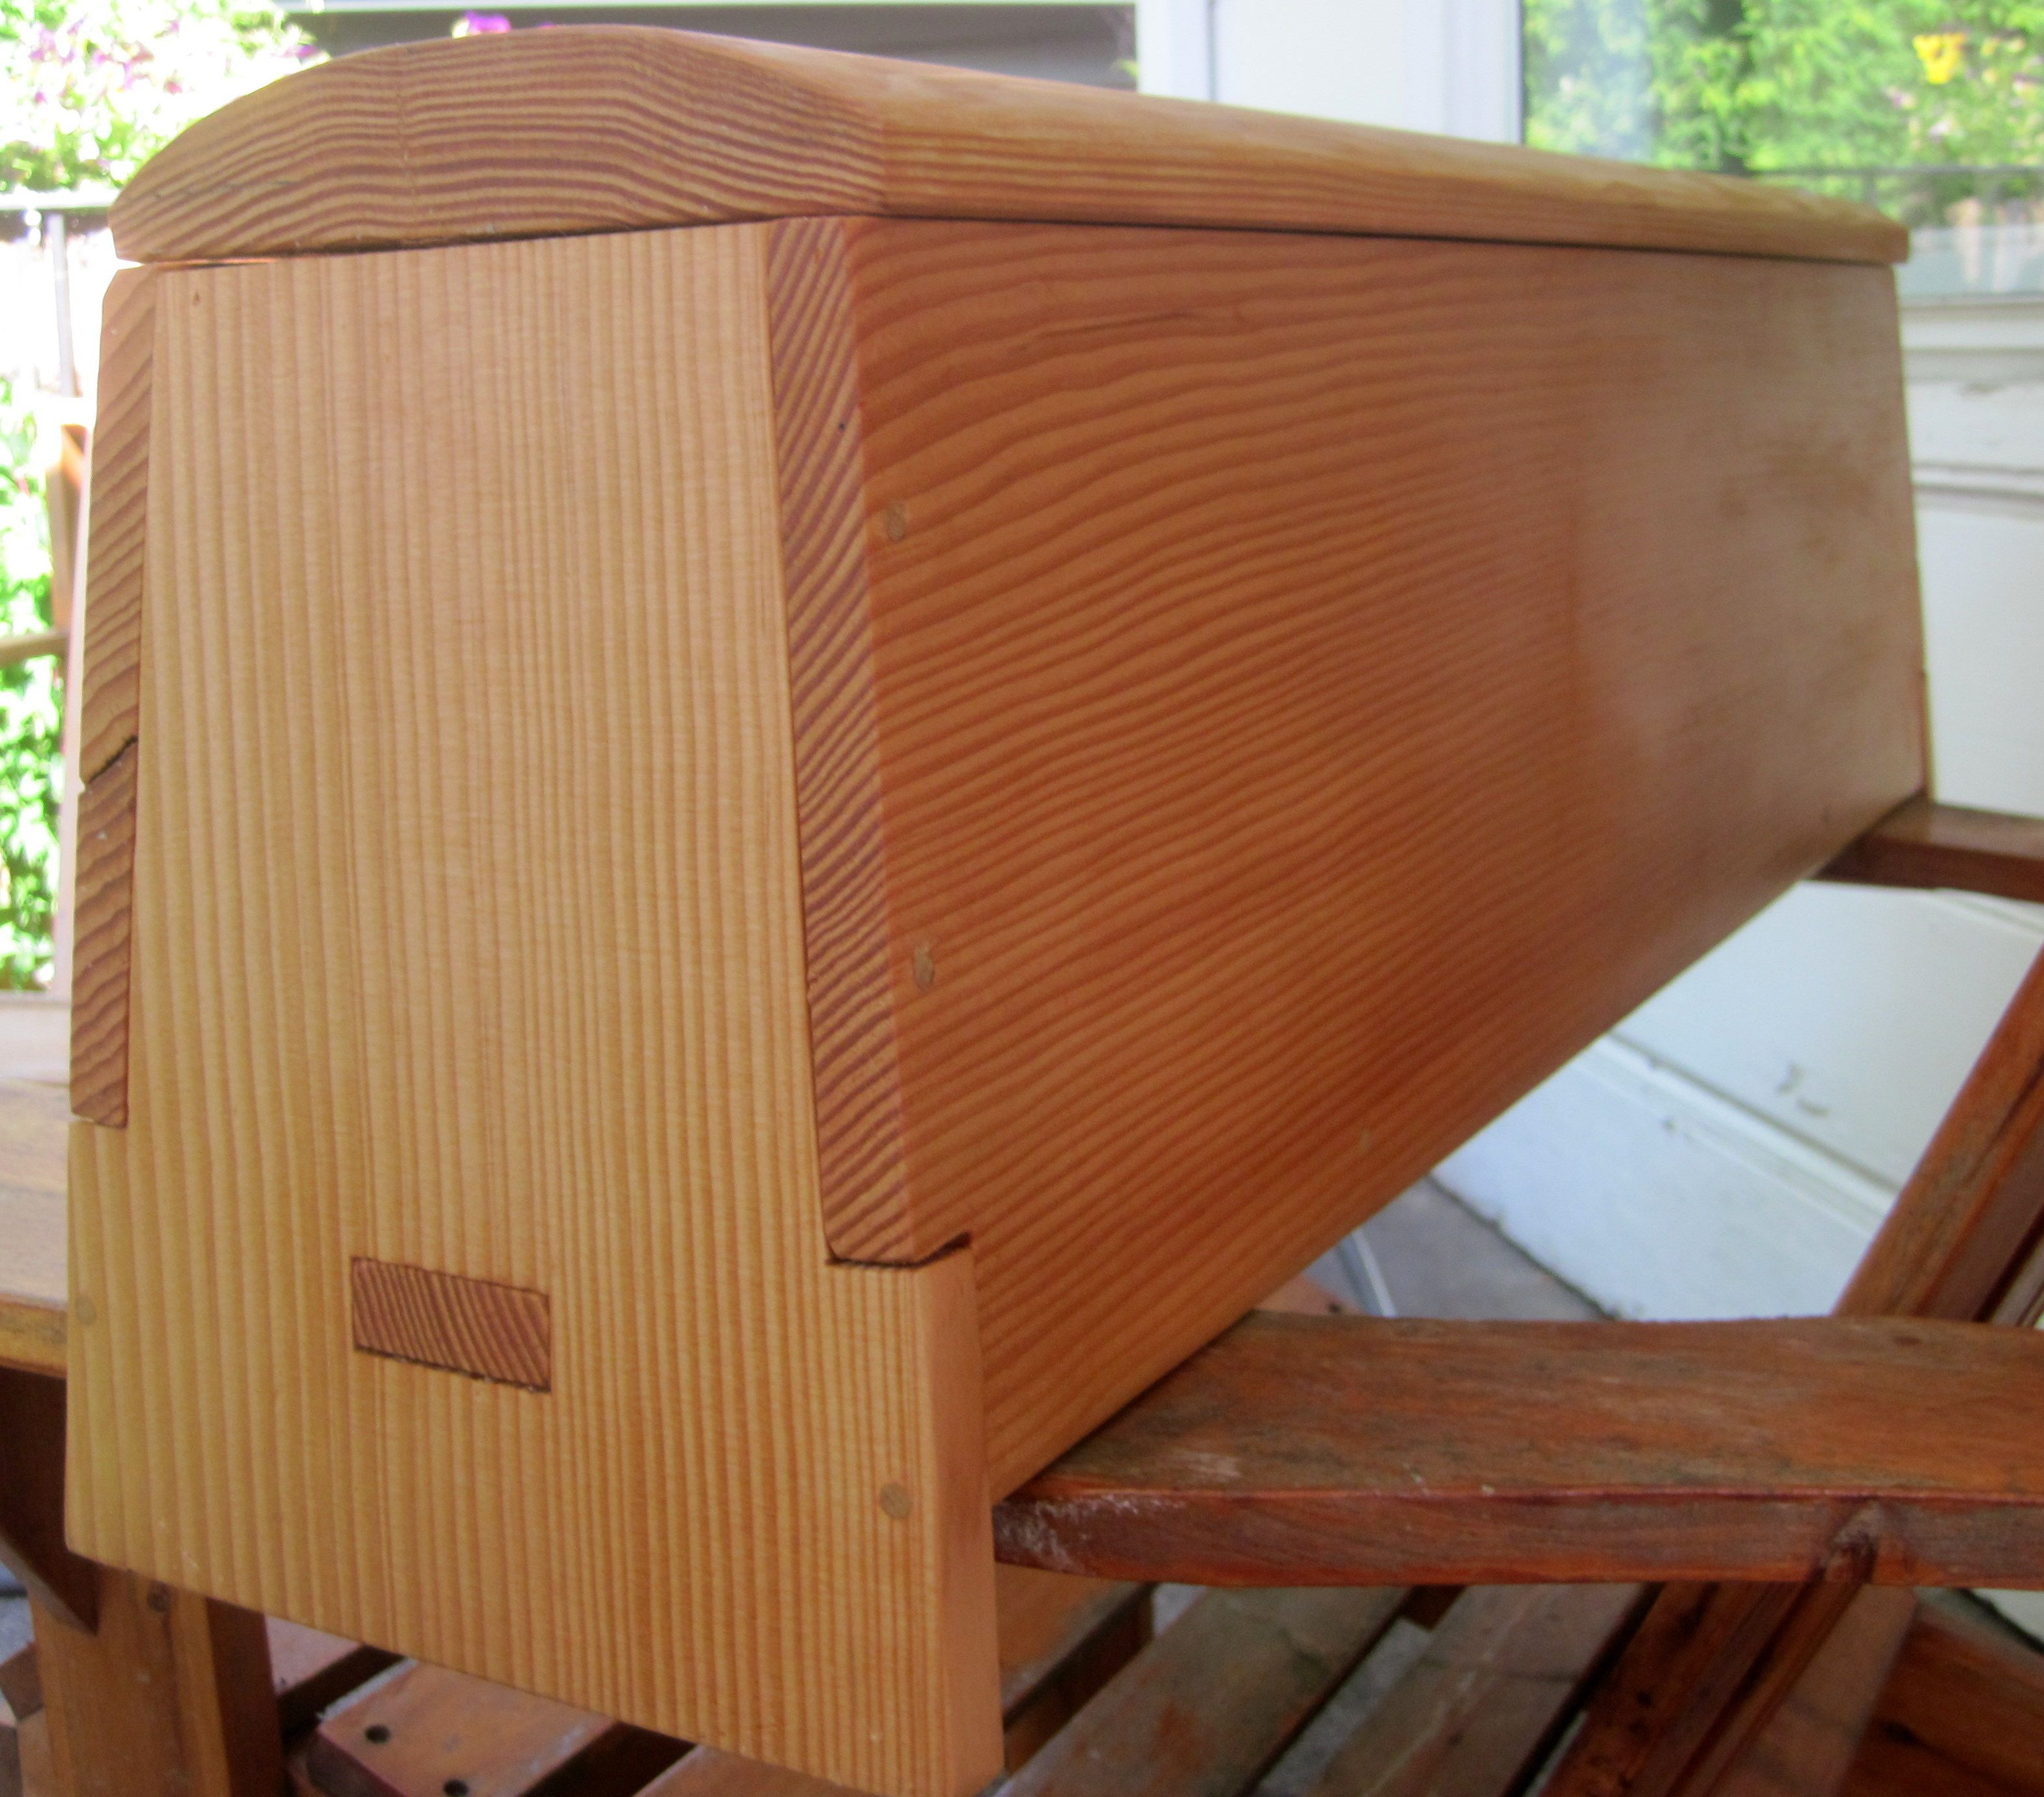 Viking Chest Plans Hospitality Medieval Furniture Medieval Furniture Plans Wood Crafting Tools